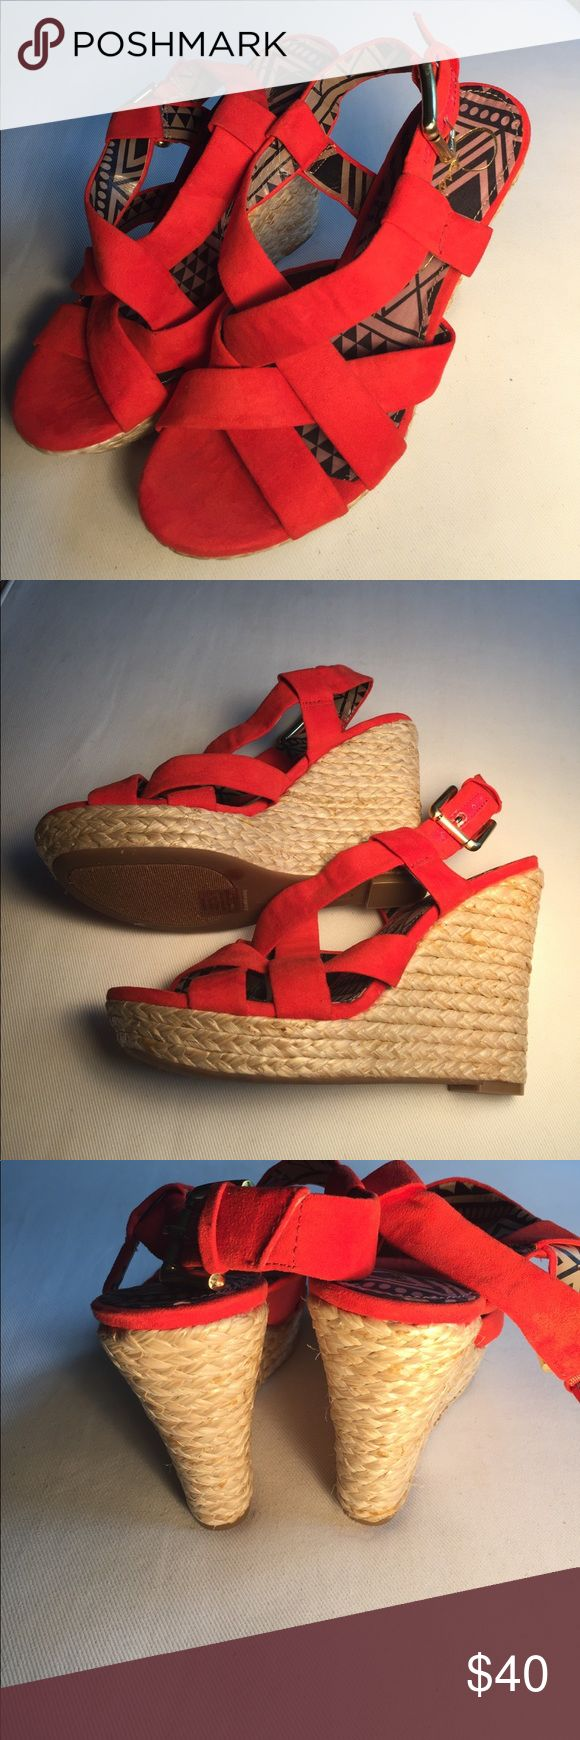 Jessica Simpson red suede wedges, new size 6.5 Jessica Simpson red suede wedges brand-new never worn size 6 1/2 Jessica Simpson Shoes Wedges